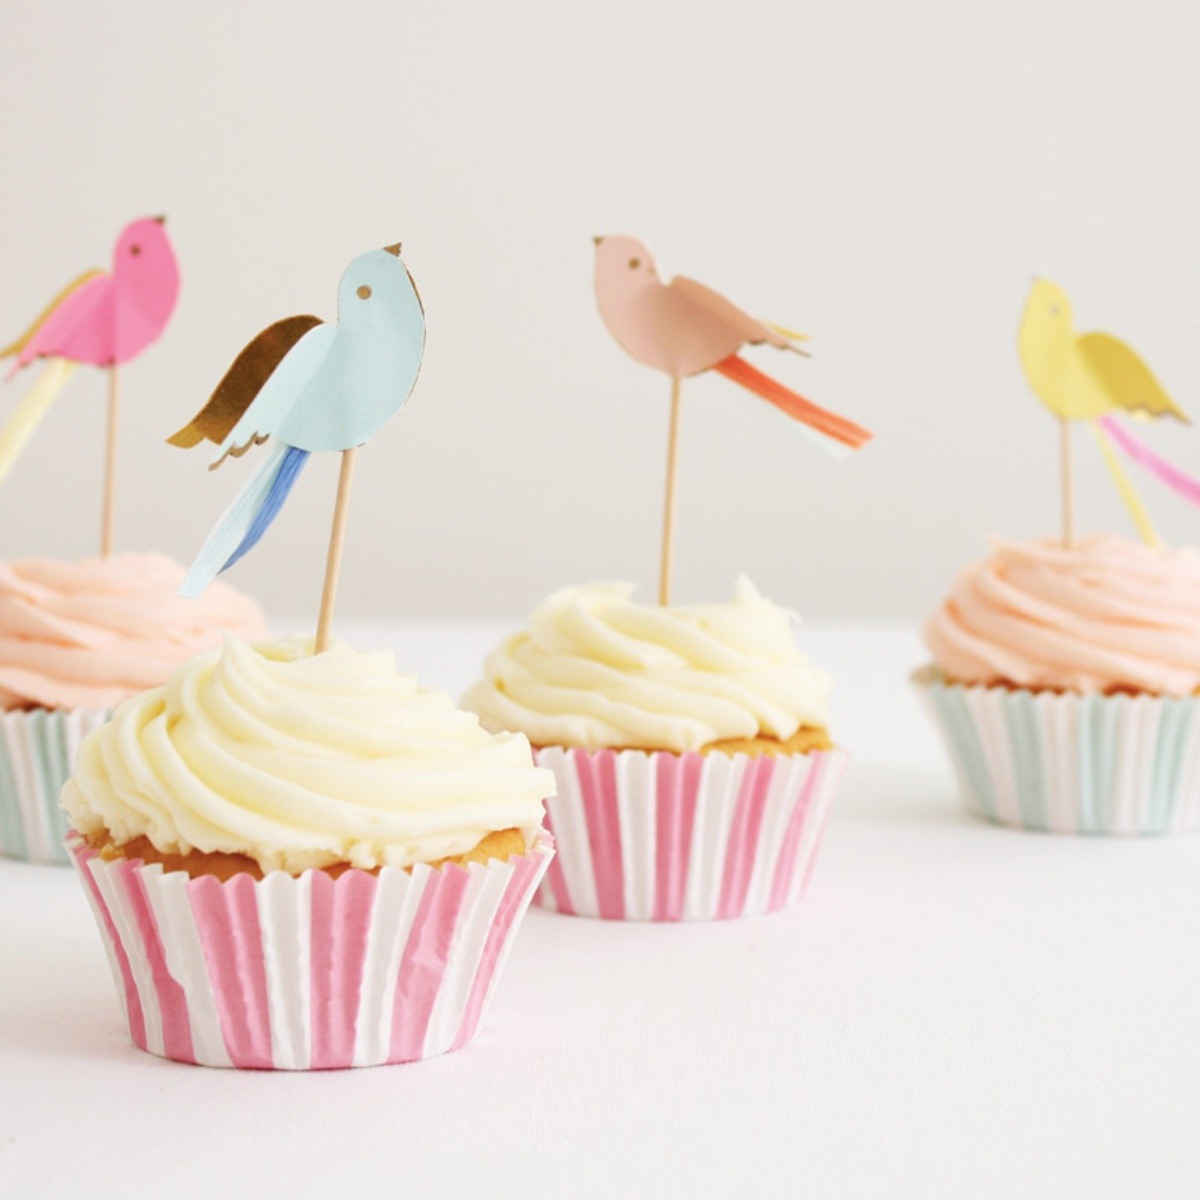 Cupcakes Kits Birdies